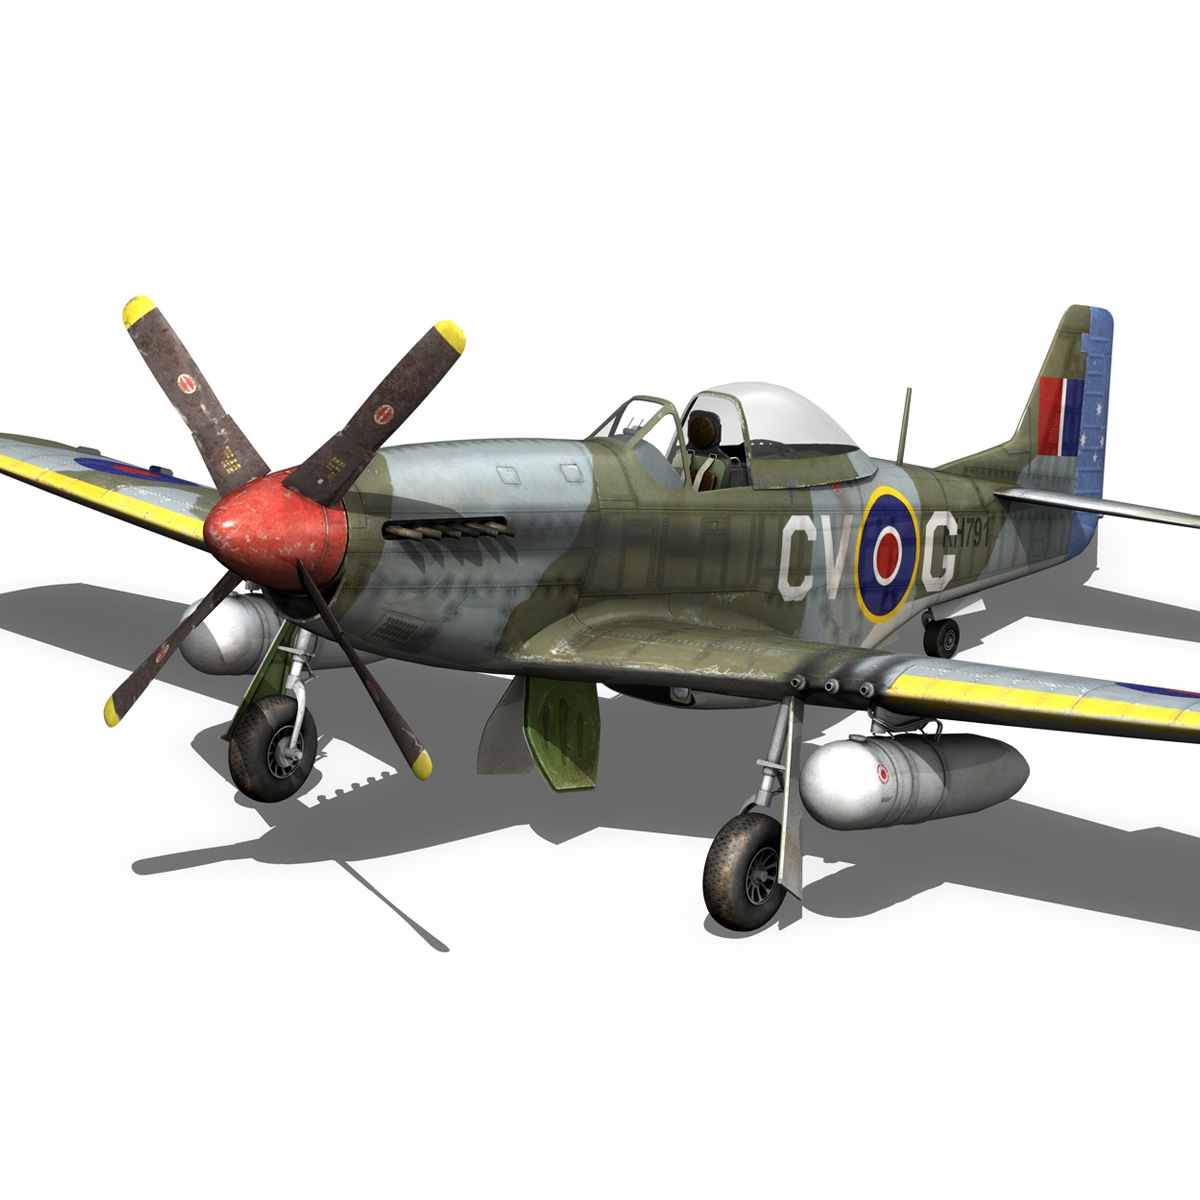 north american p-51d – cv-g 3d model 3ds fbx c4d lwo obj 188567